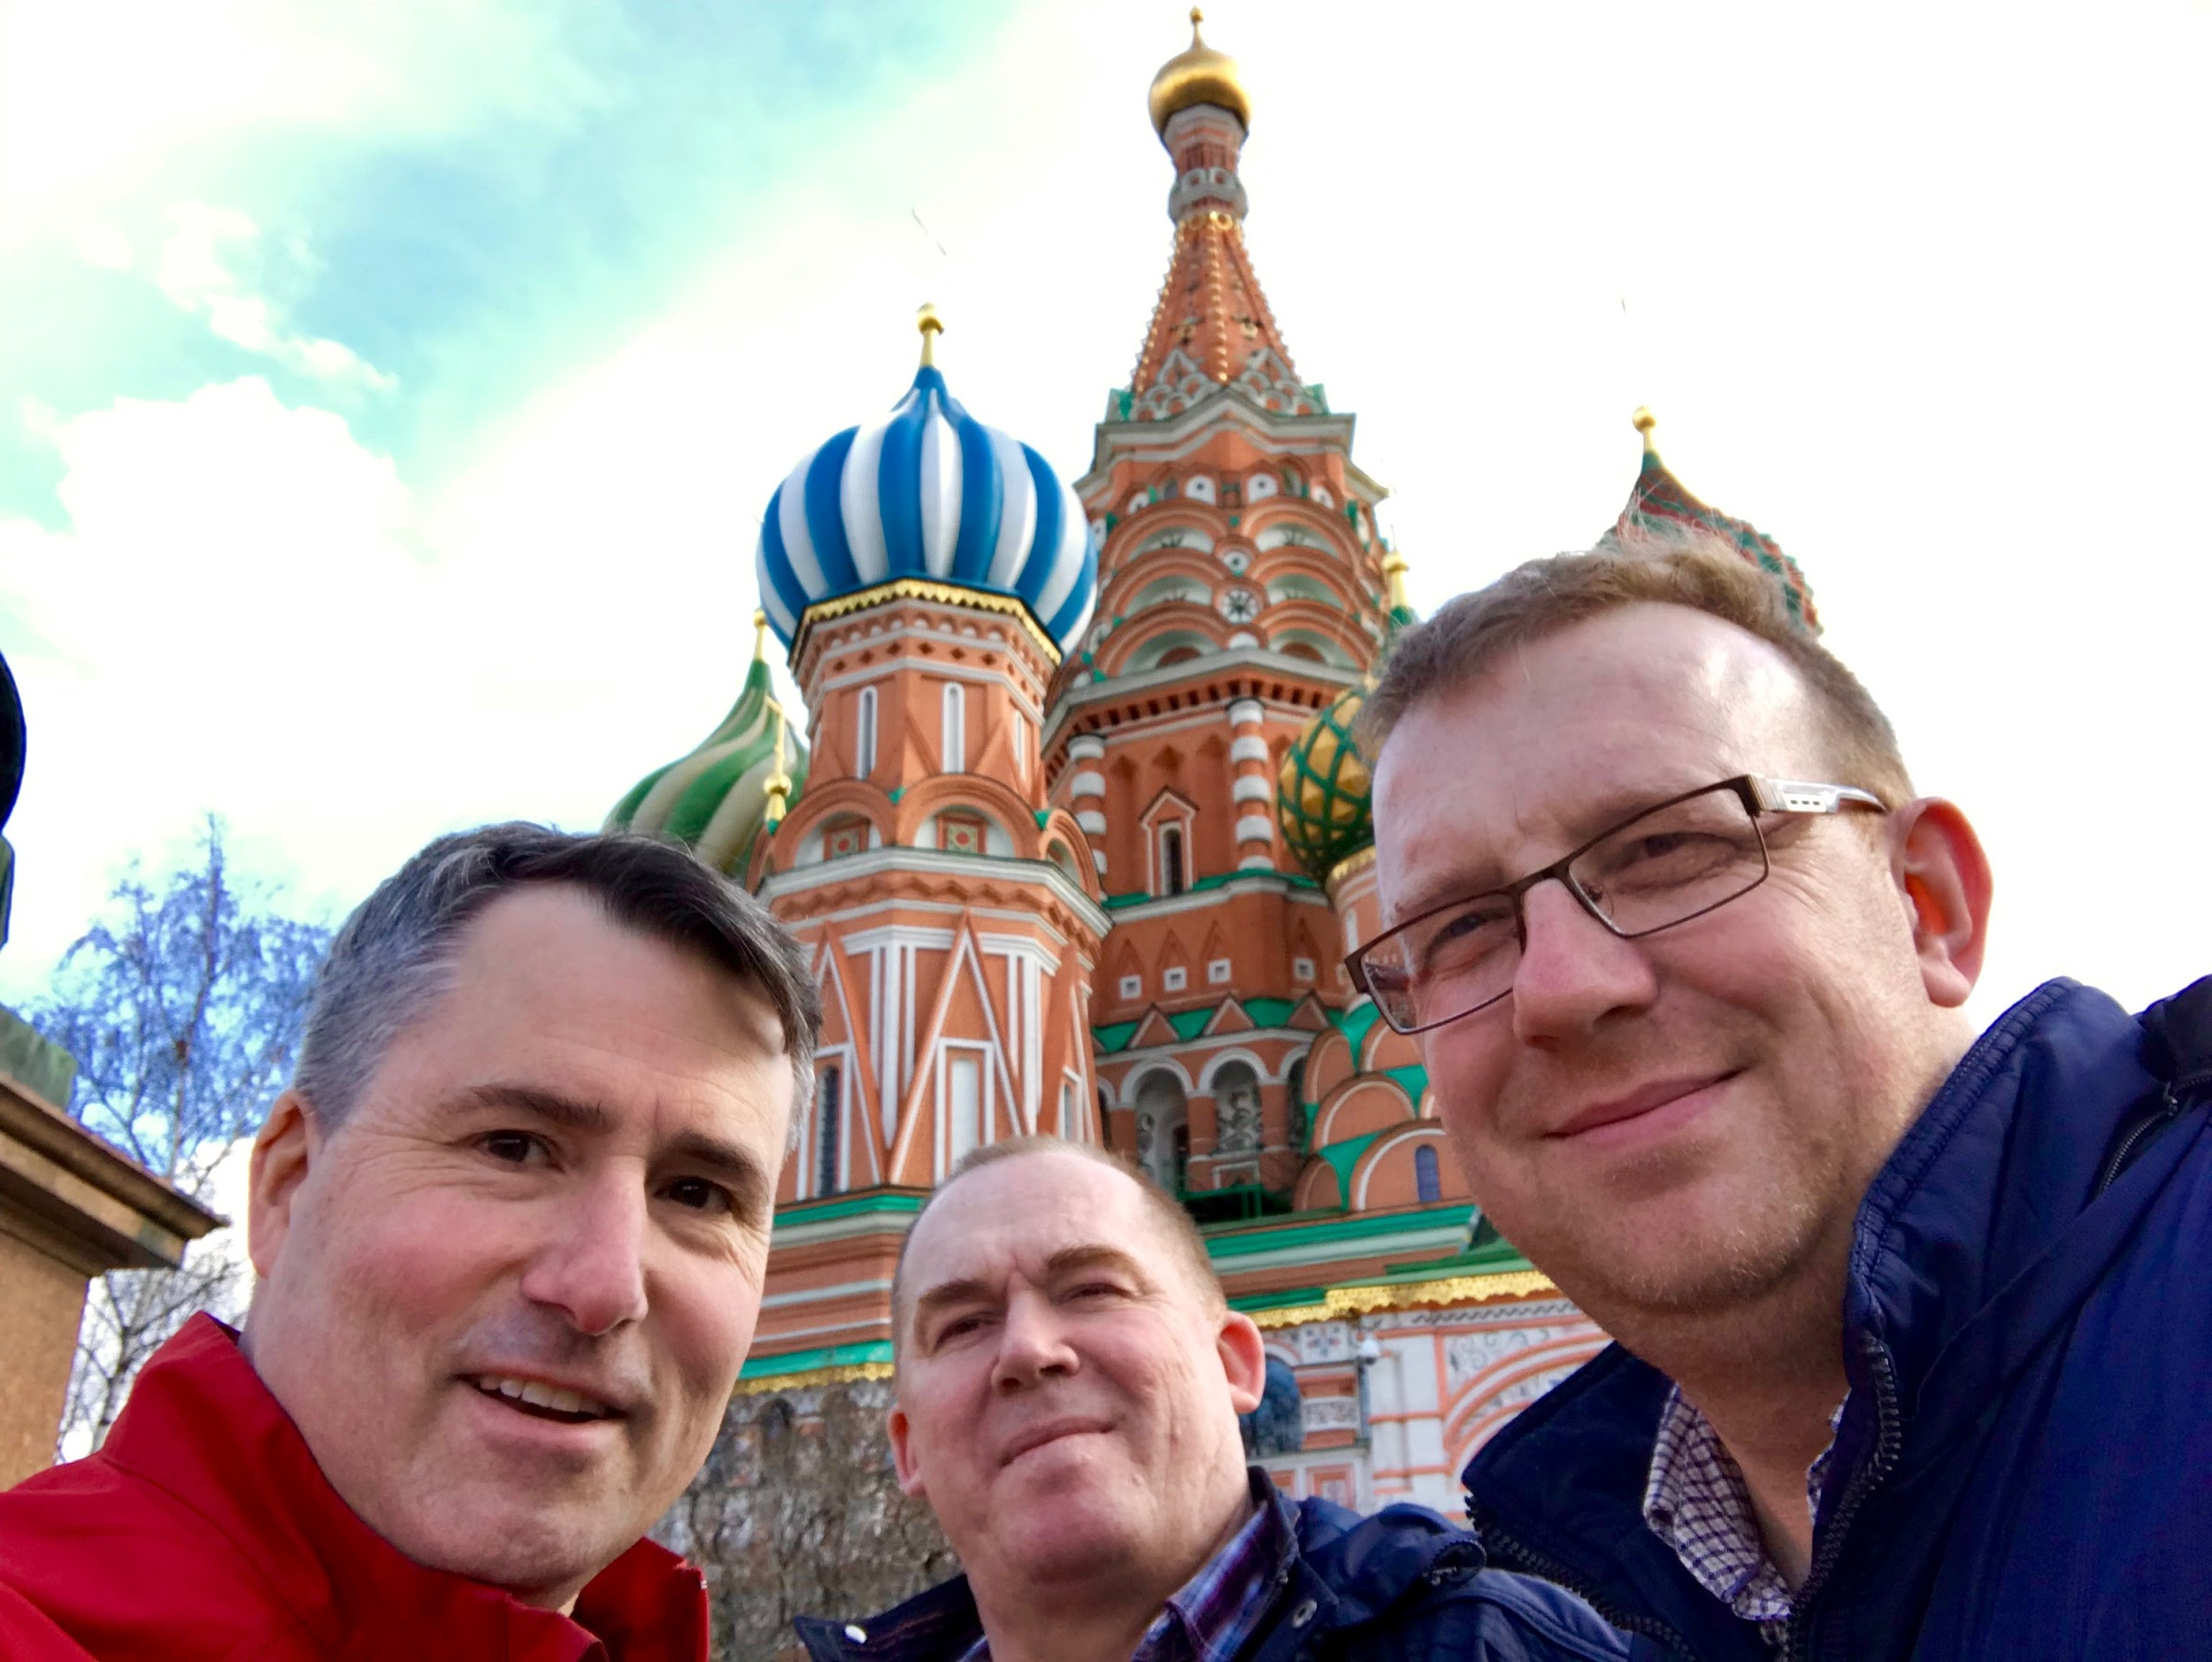 Briarwood's Bryan Wintersteen (left) with HopeRussia church planters Yuri Levchenko (center) & Evgeni Kruzhkov(right) on Red Square in front of St. Basil's Cathedral in March, 2019.